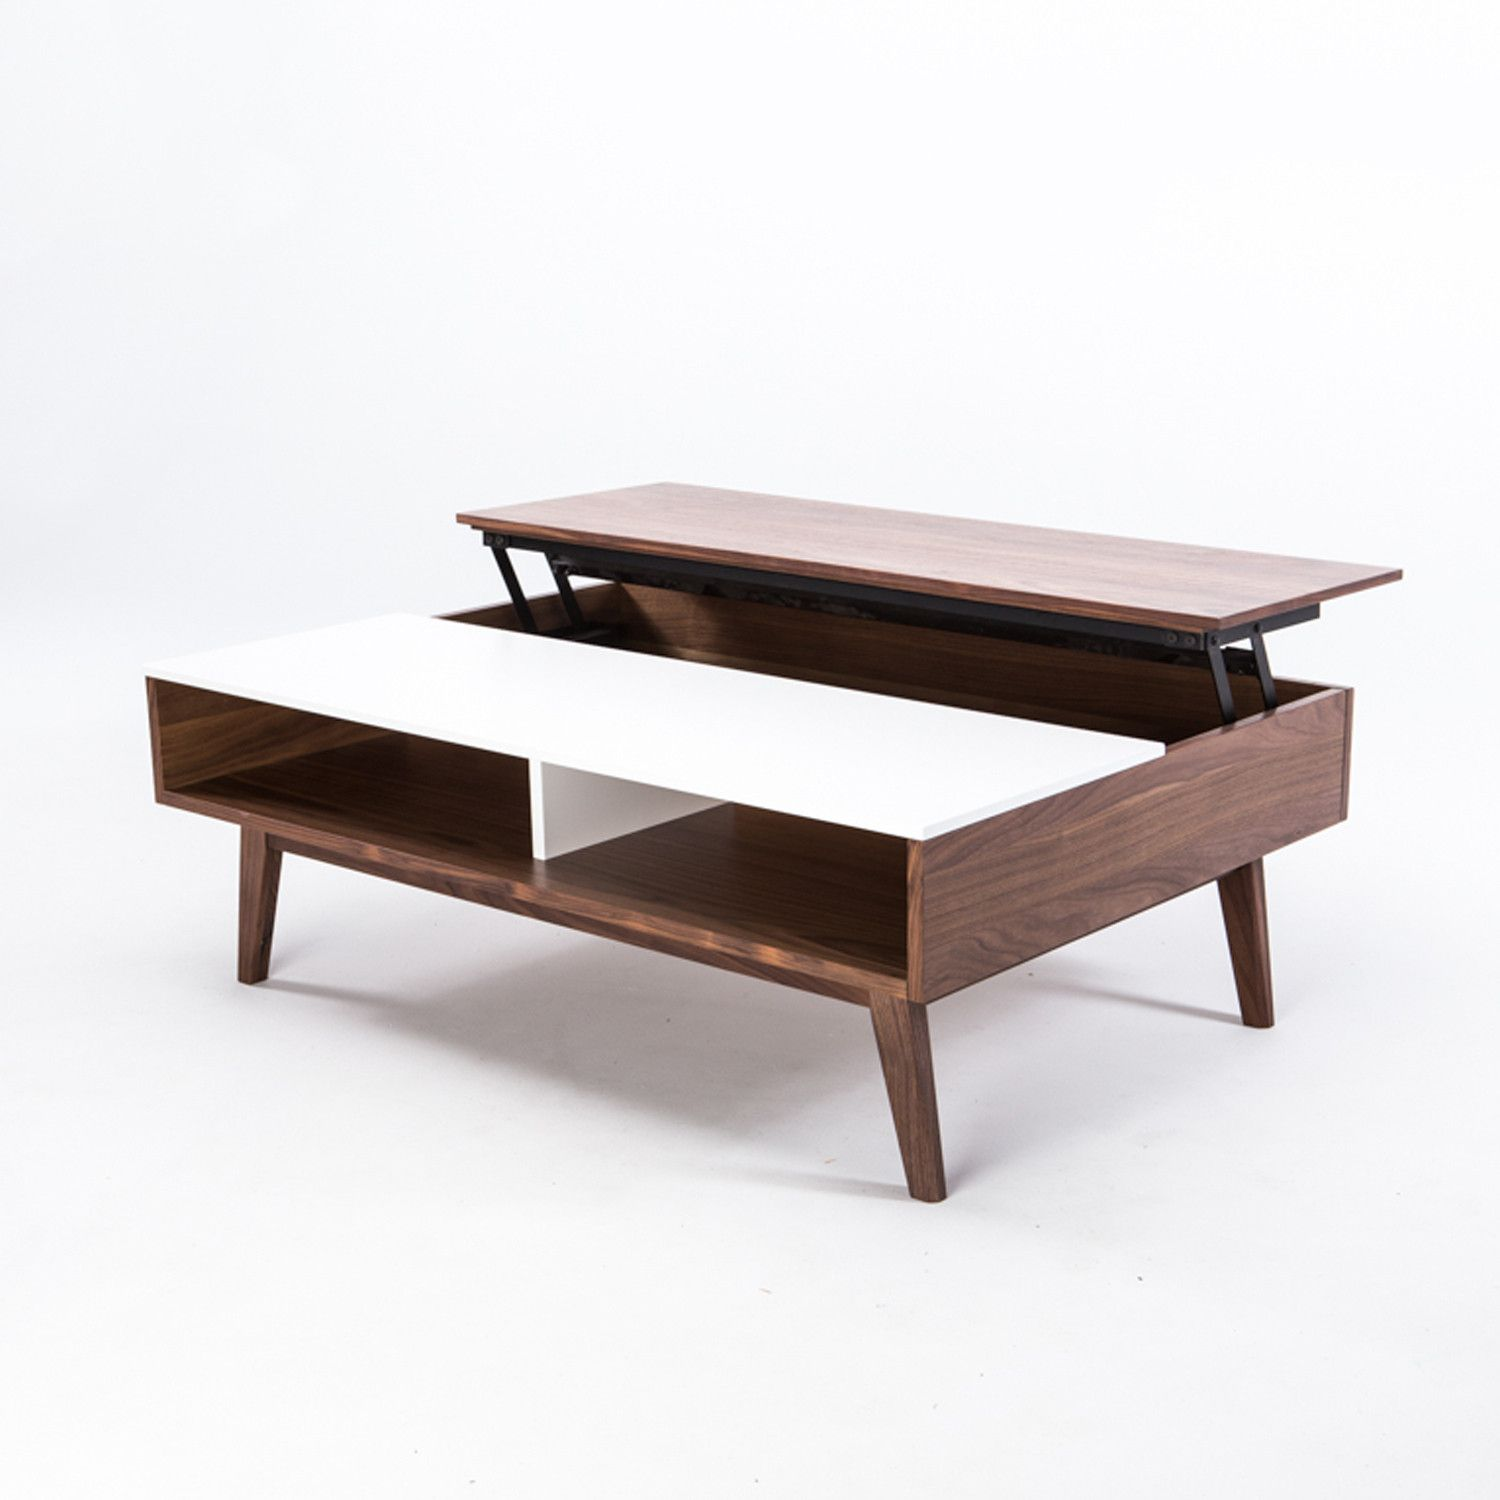 Walnut Lifting Coffee Table Obvious nod to mid century influence